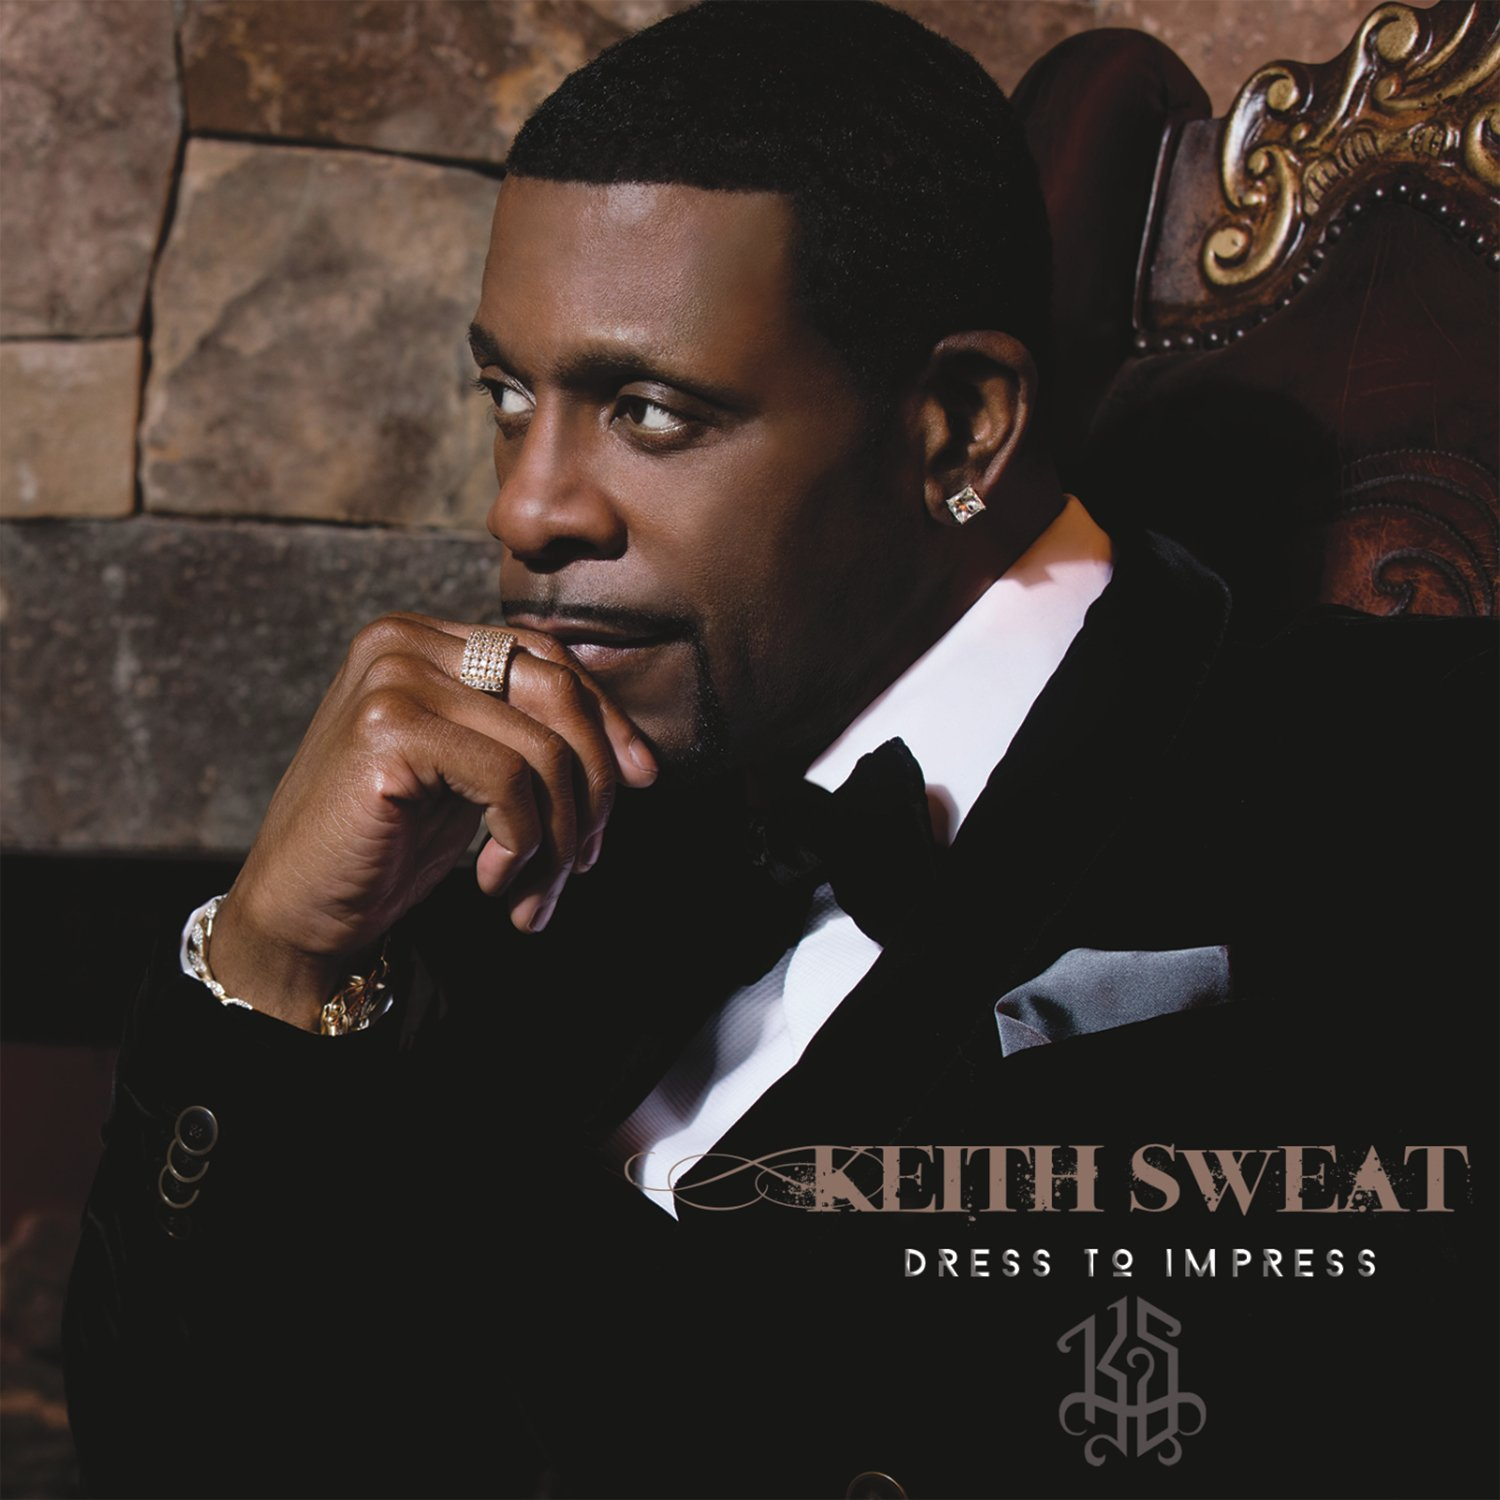 Keith Sweat, Dress to Impress | Album Review